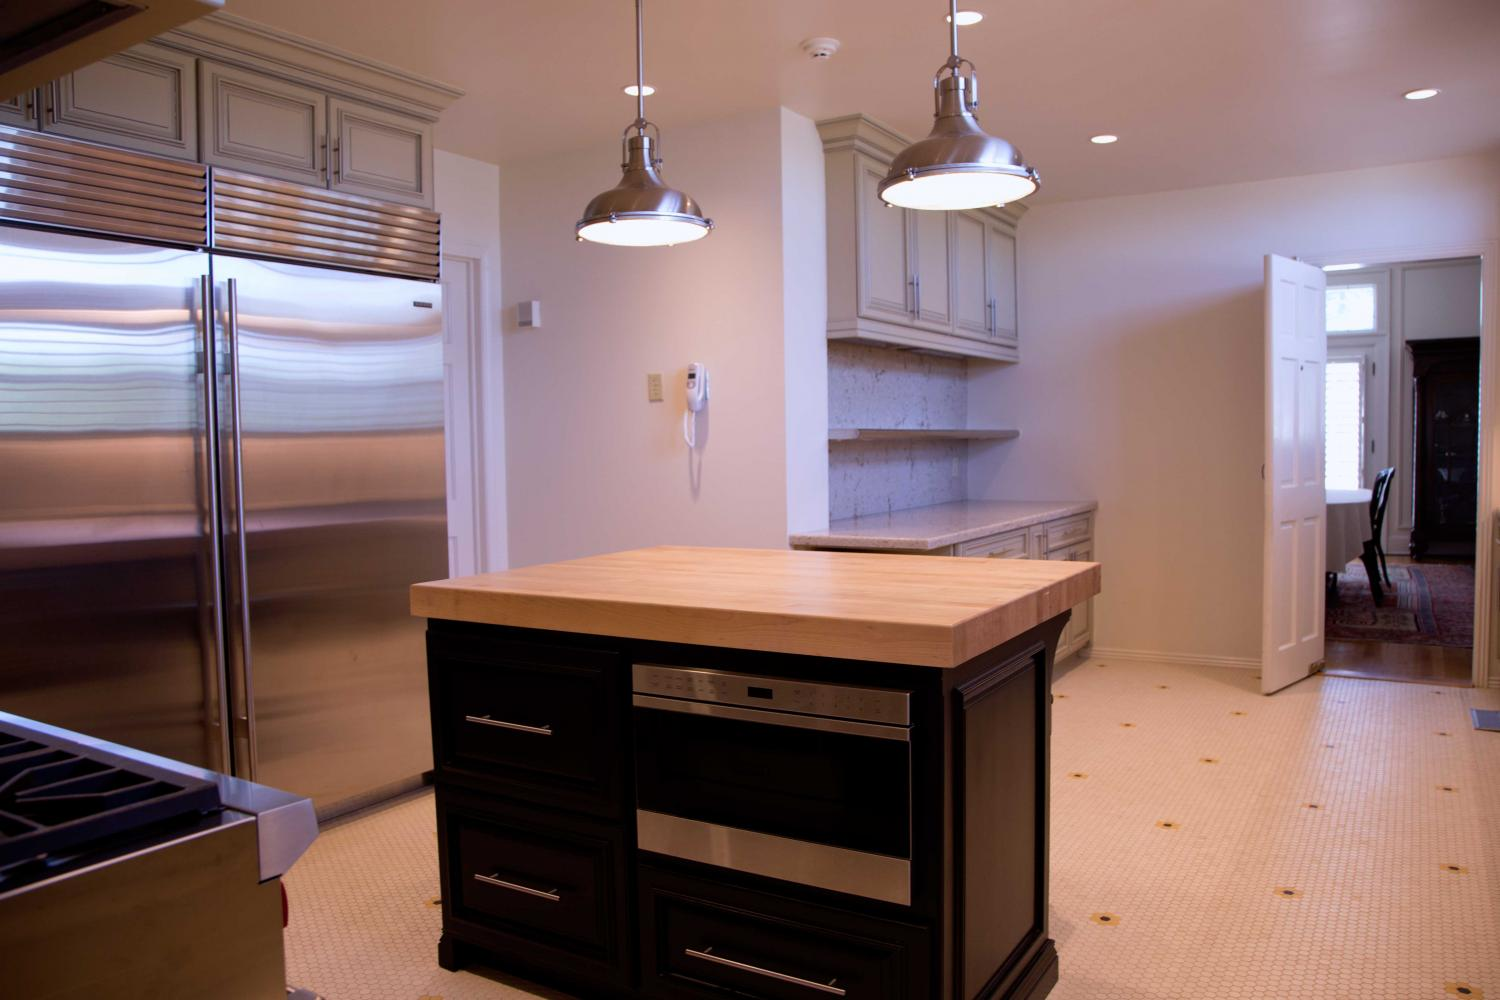 Kitchen+at+the+Hoover+House.